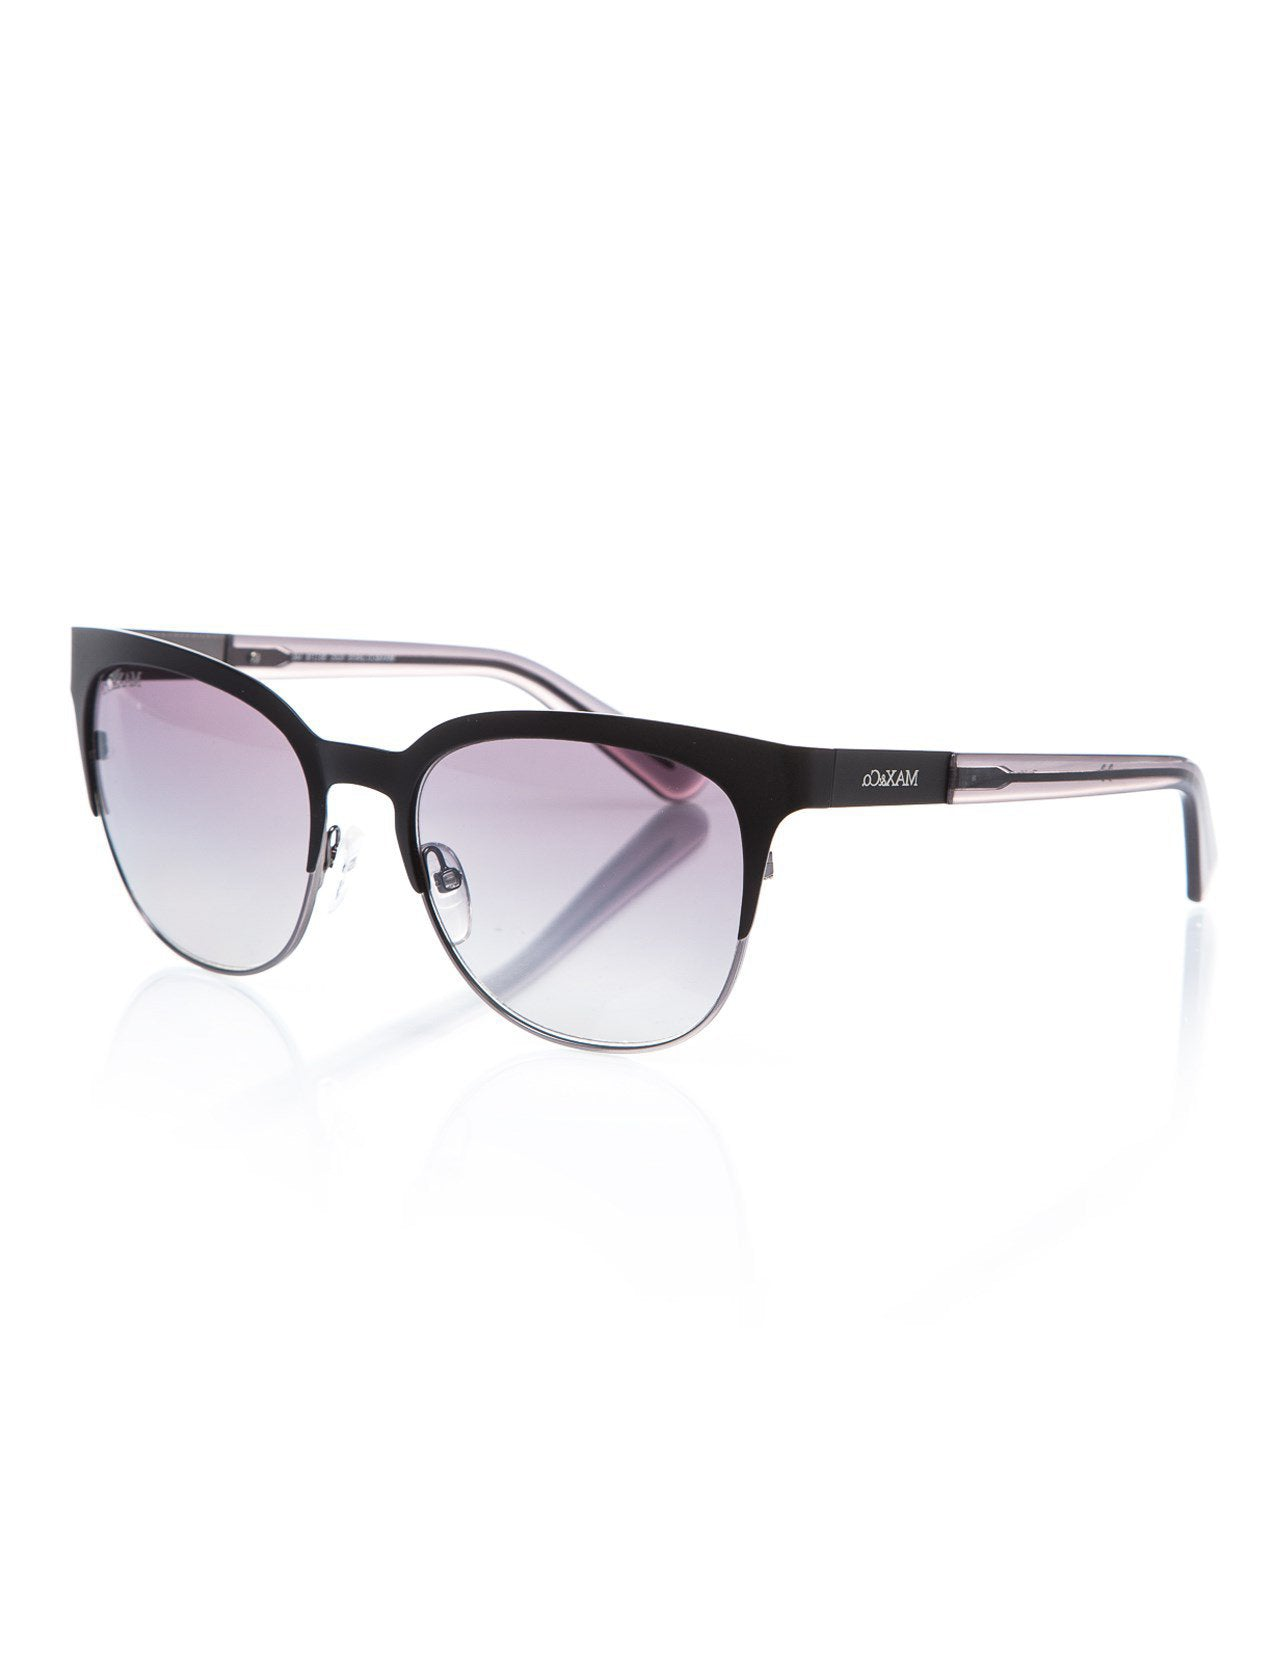 Women's Semi- Frame Sunglasses